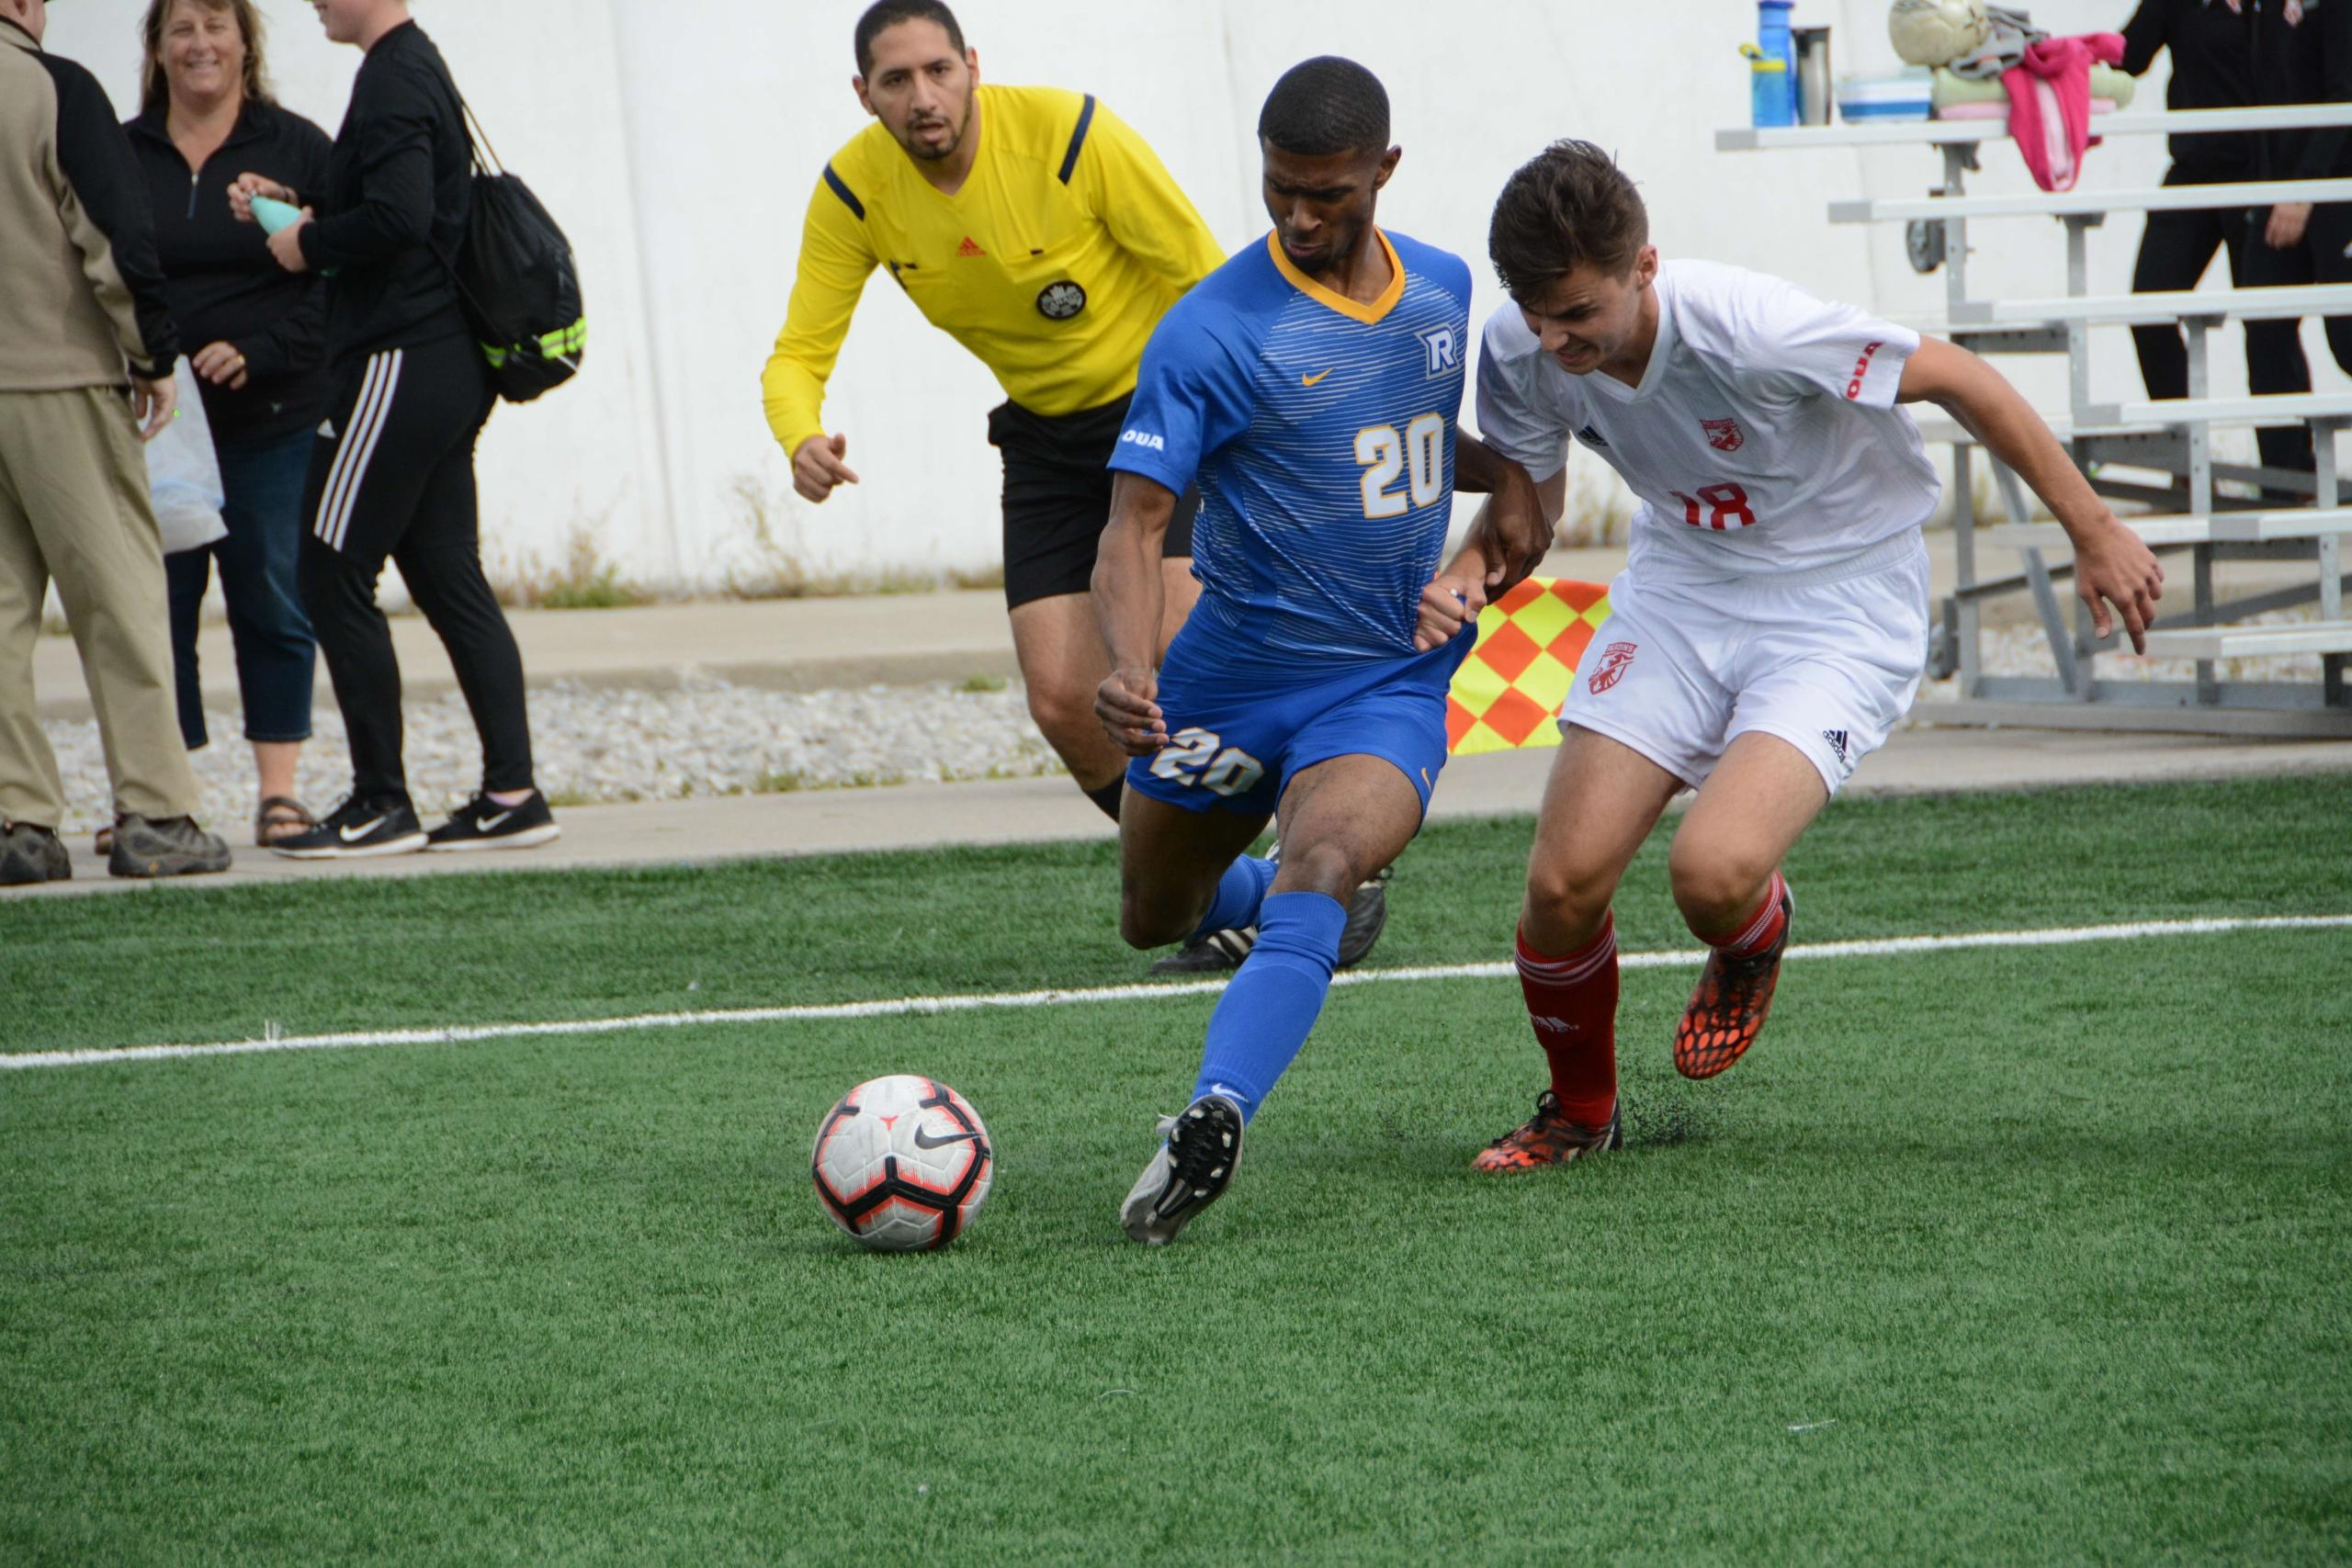 A photo of a male Ryerson student and a male student from another school going head to head in soccer game